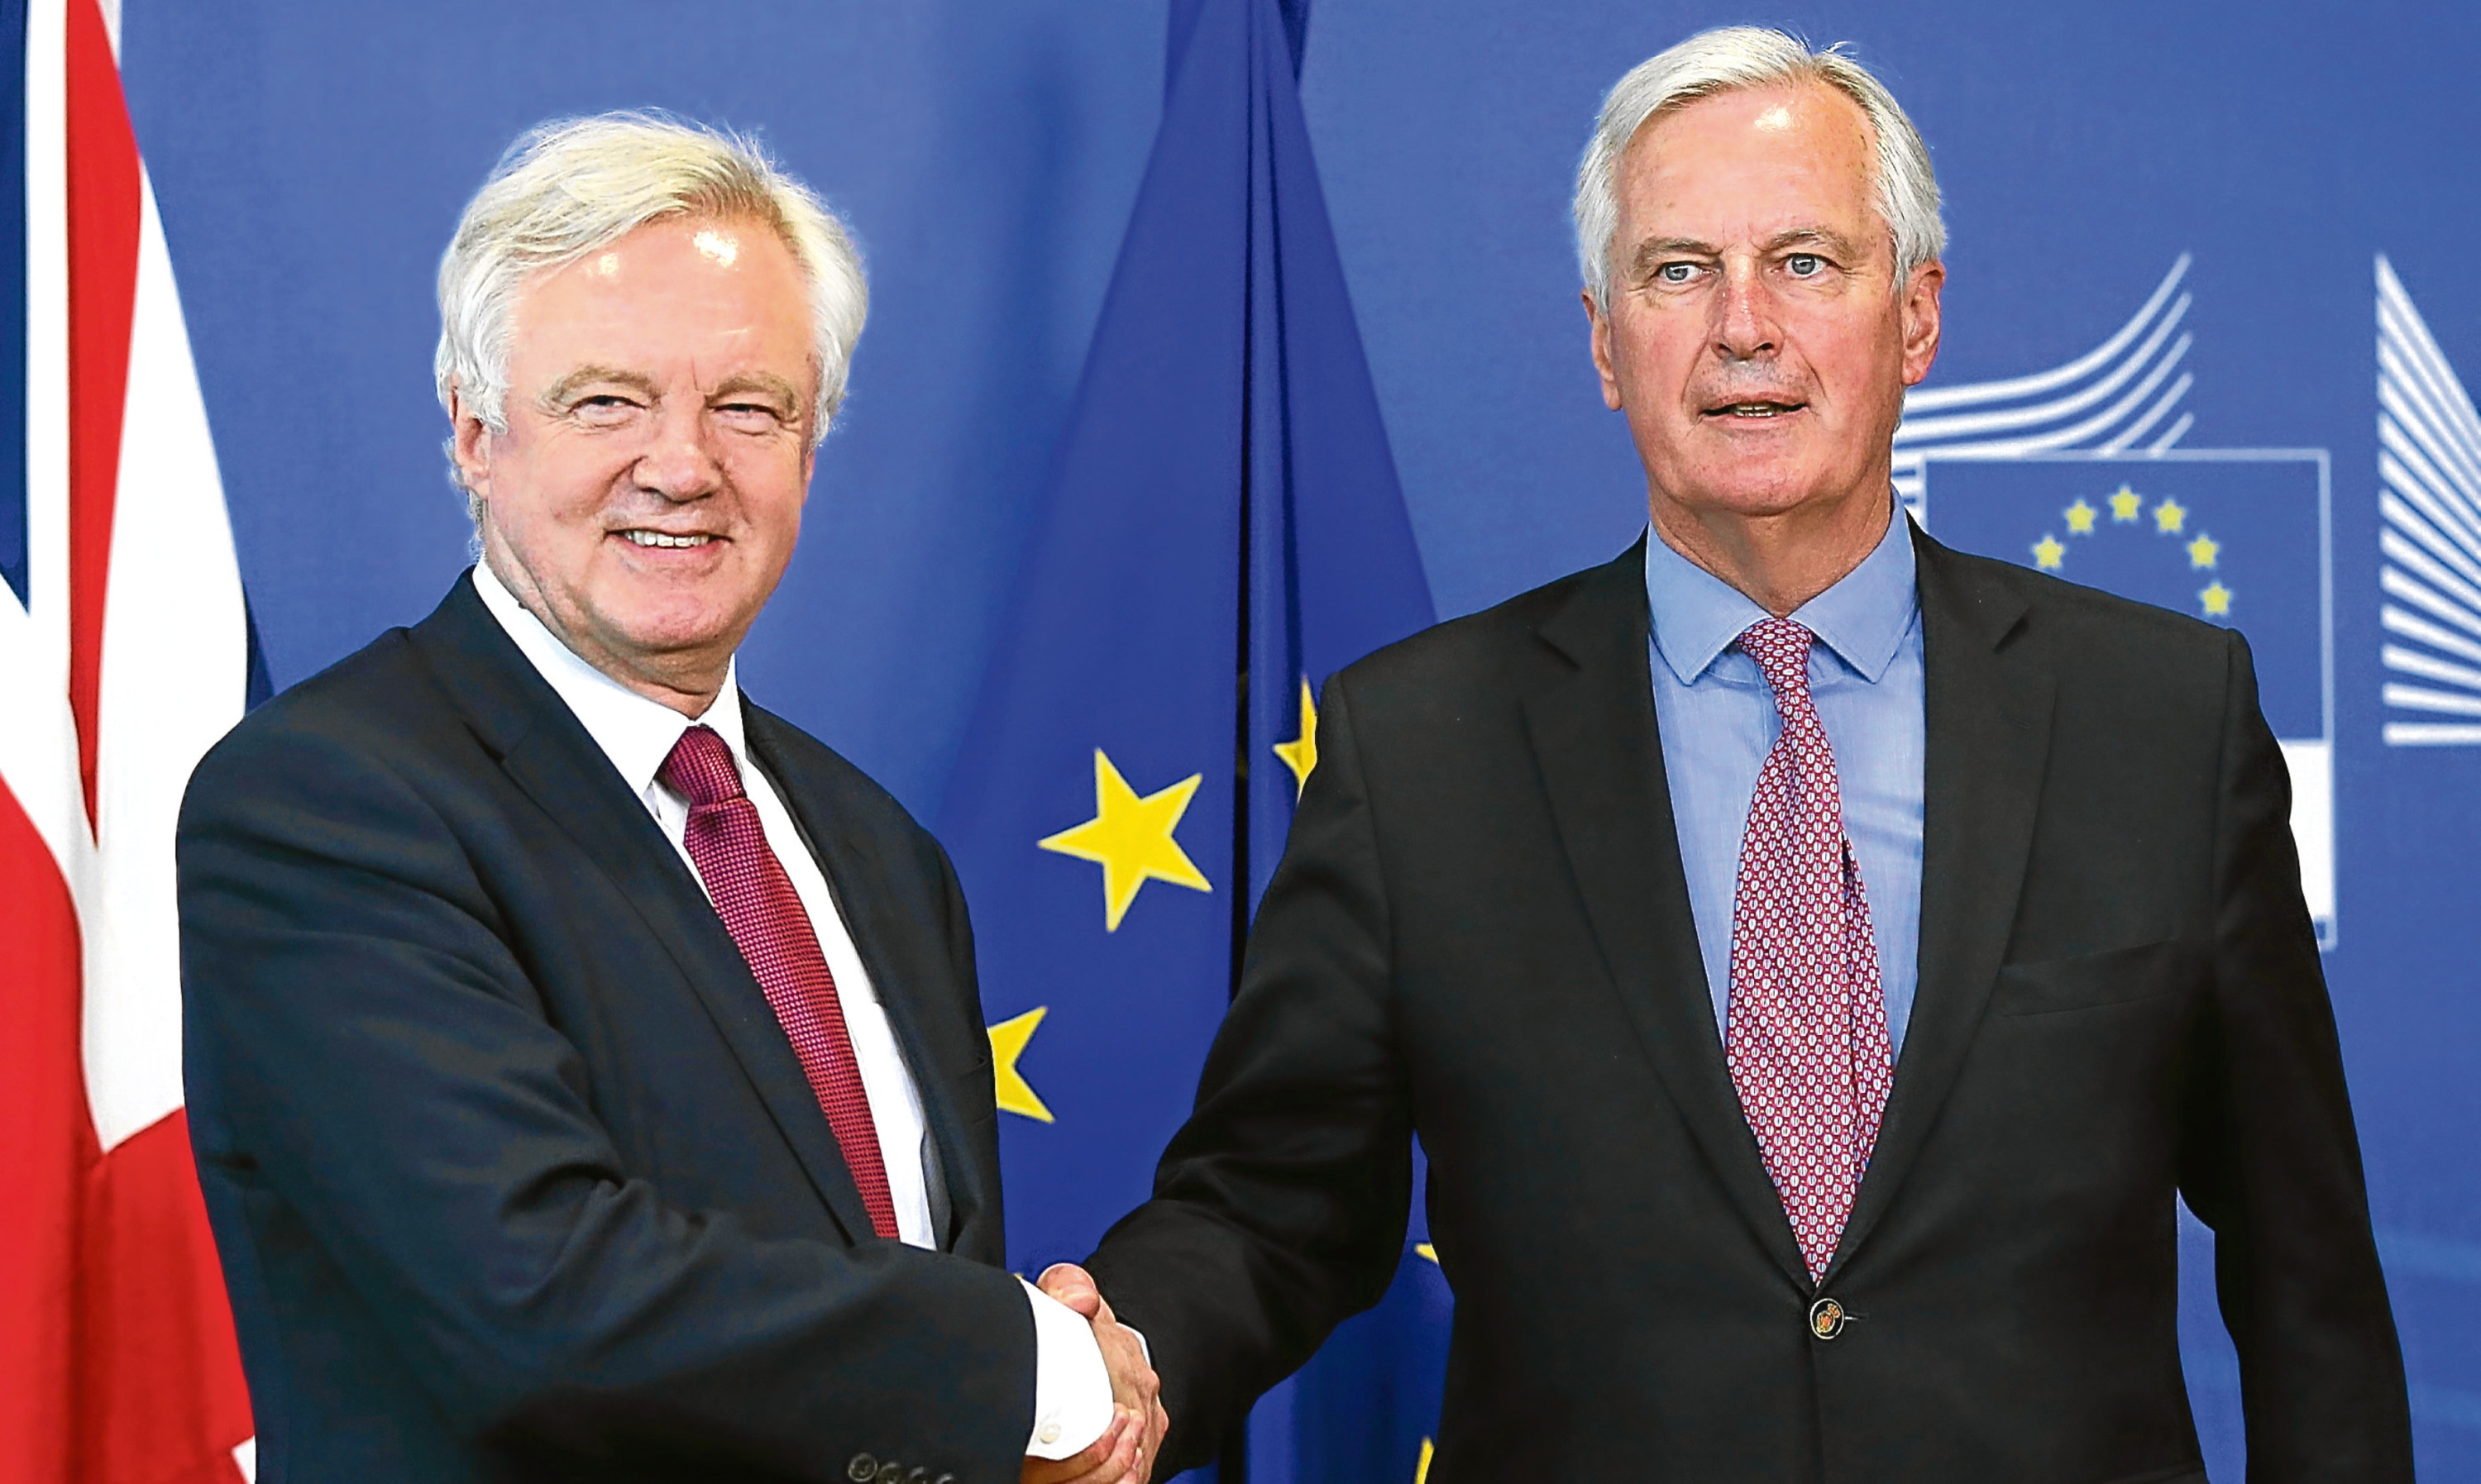 Brexit secretary David Davis and EU negotiator Michel Barnier.